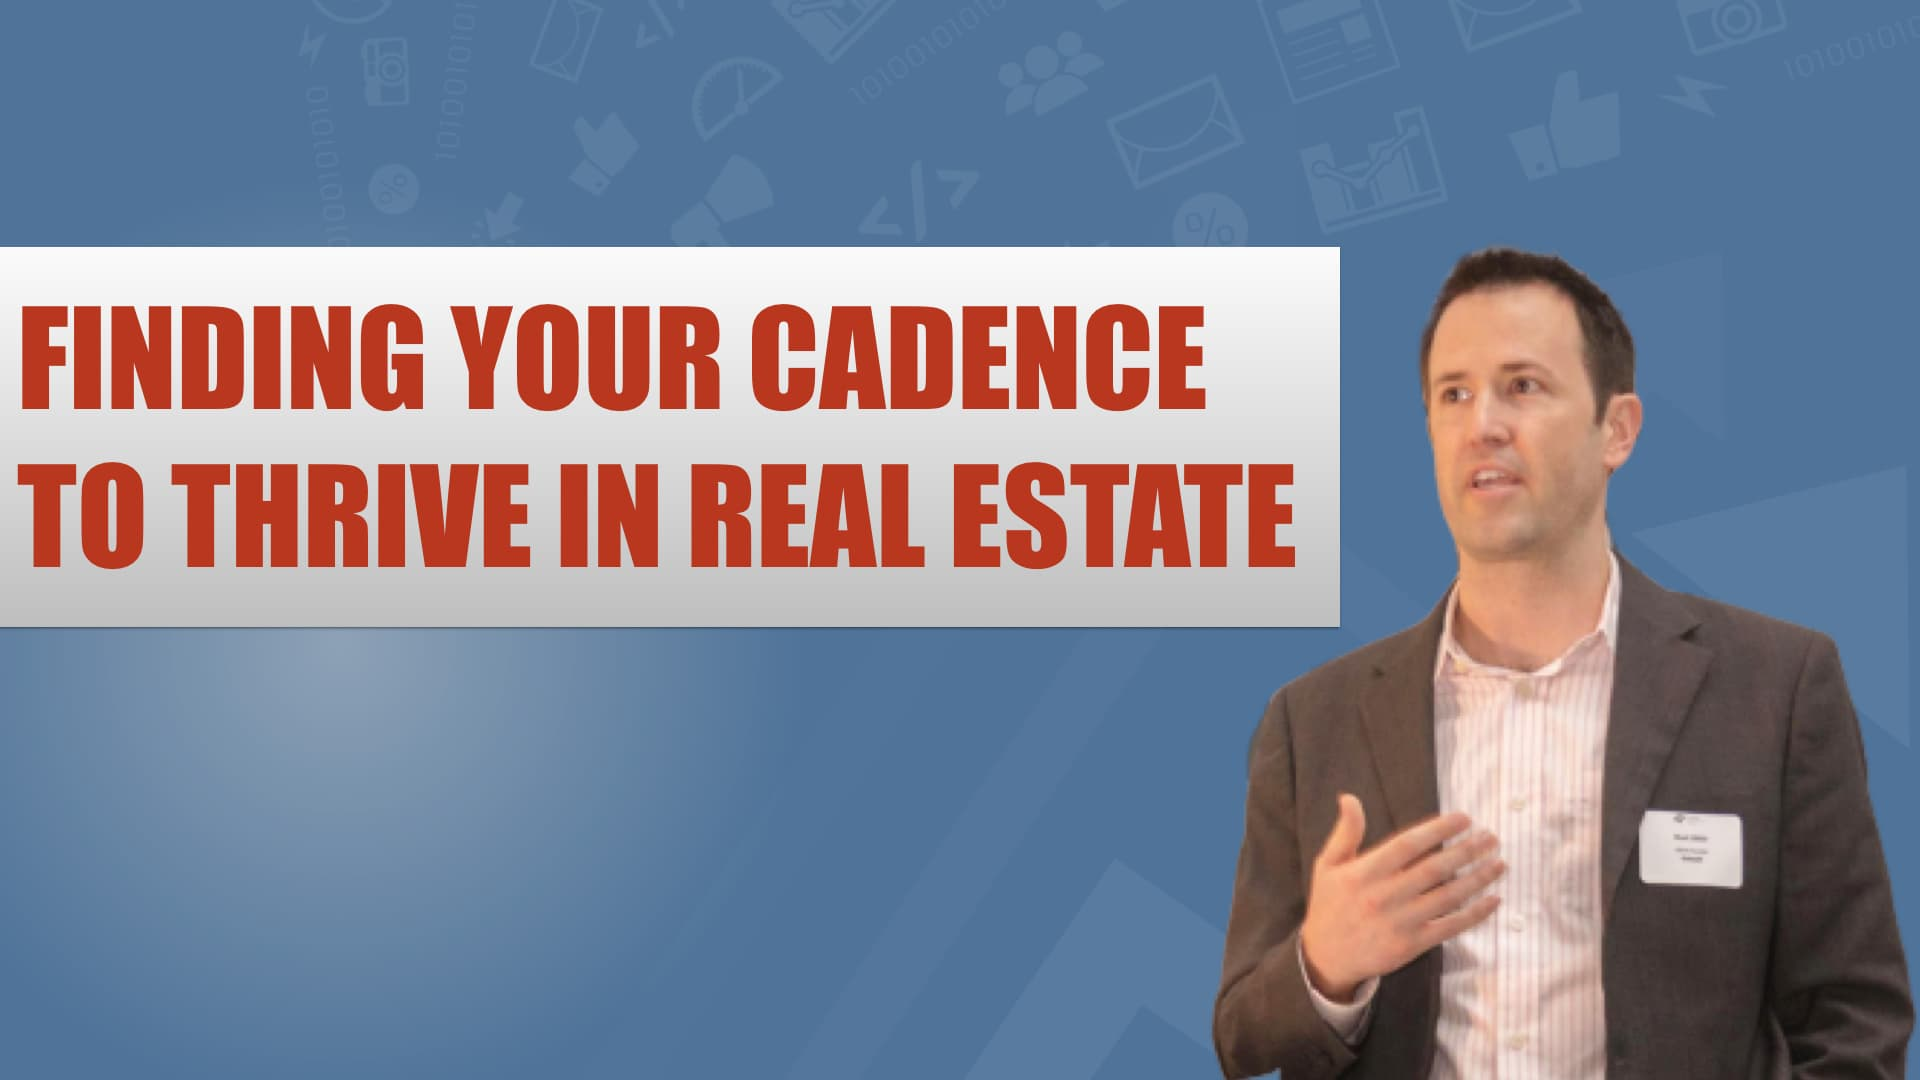 Real Estate Success - Finding your cadence to thrive in Real Estate - Course